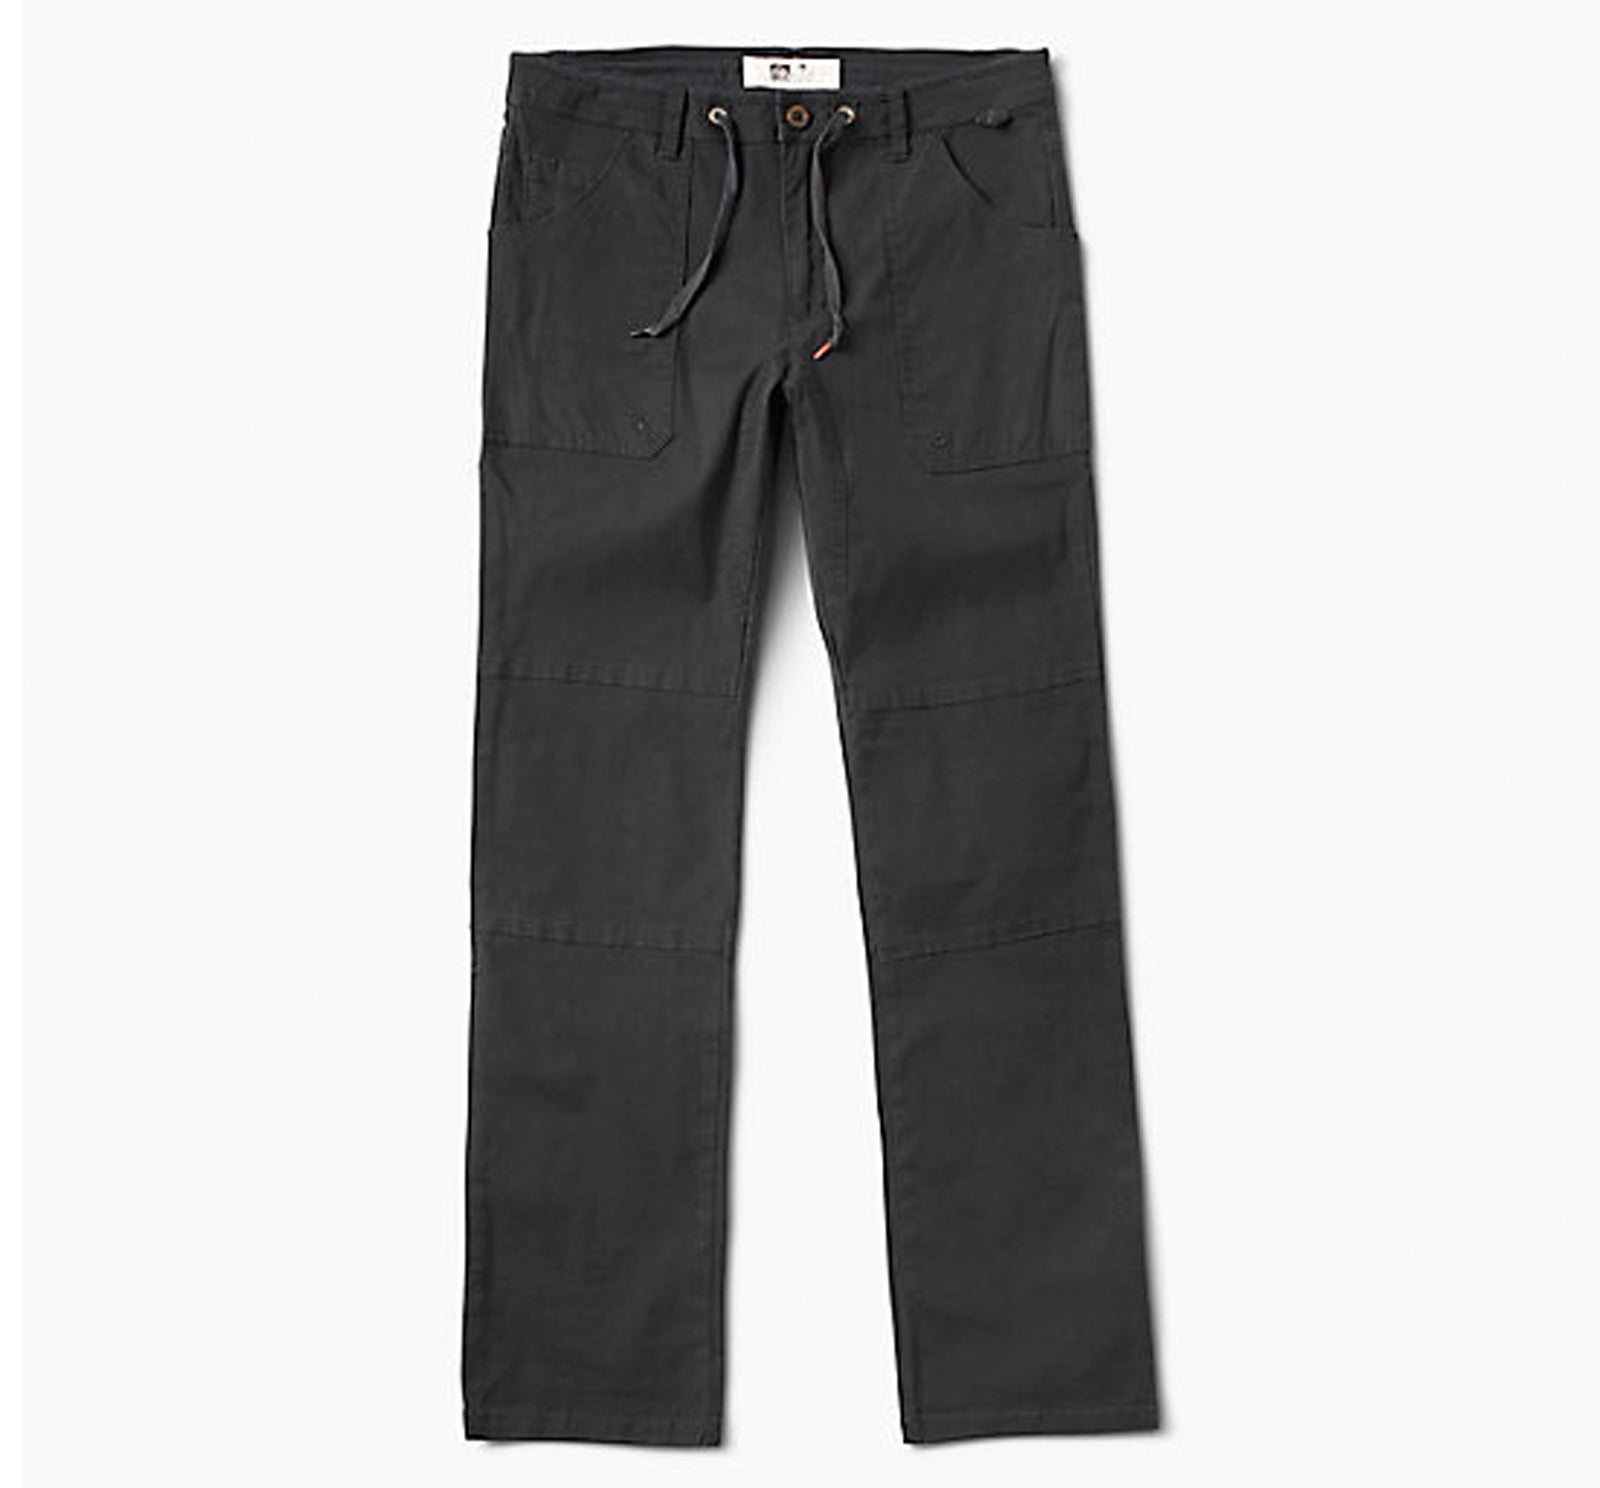 Reef Adventure 2 Men's Pant